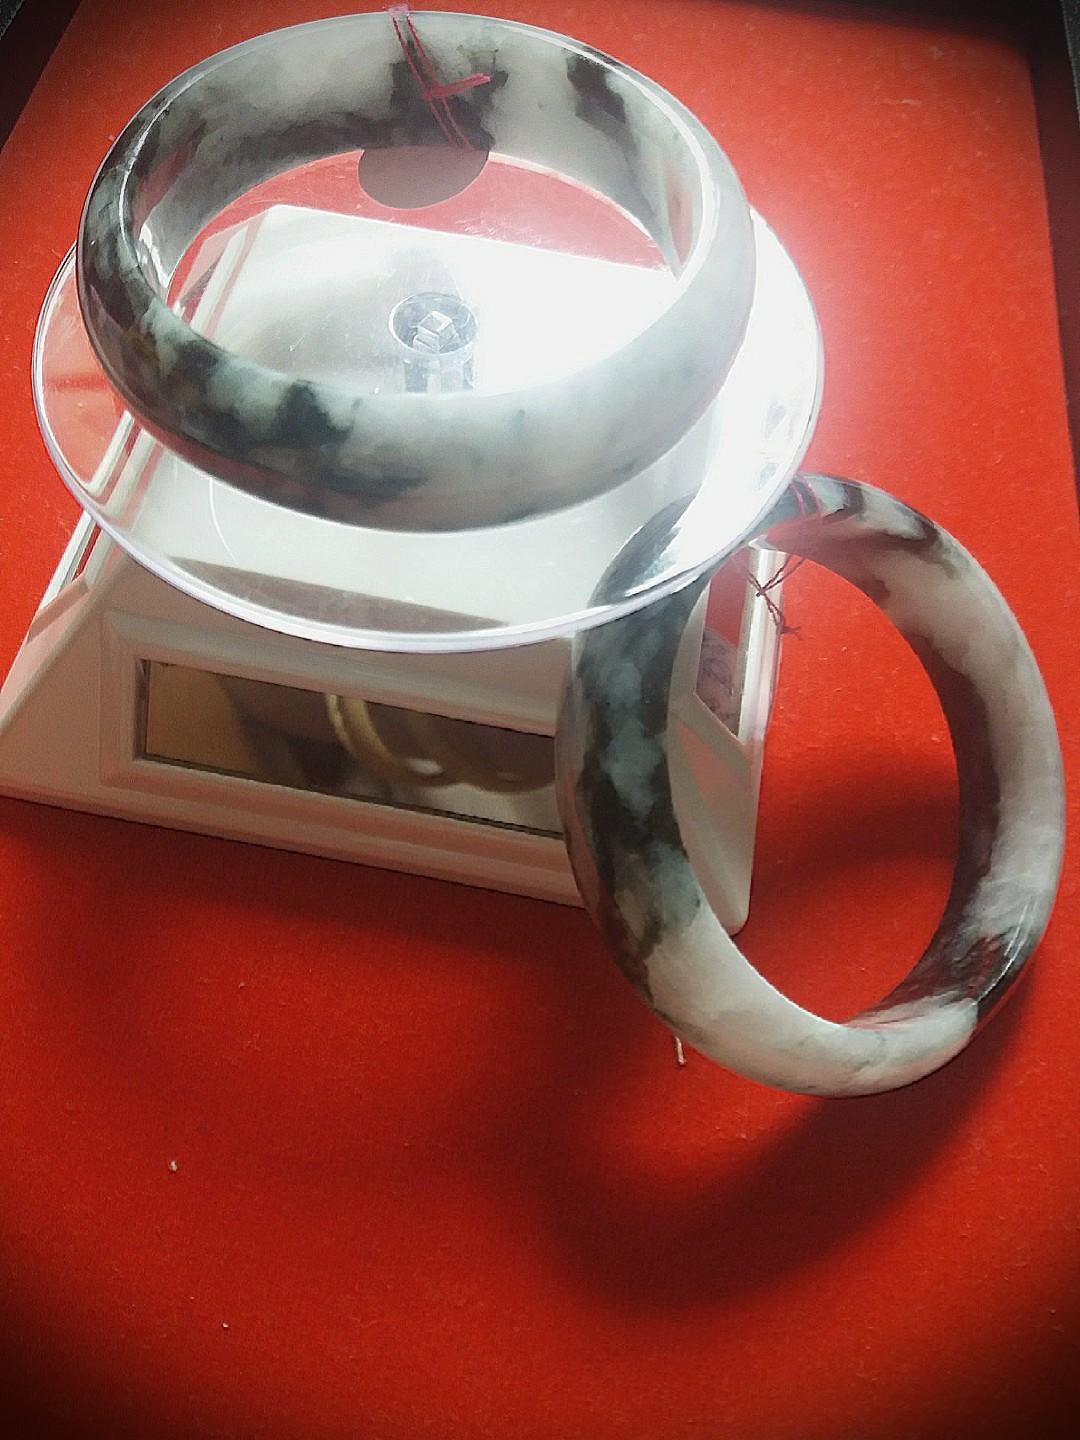 Sales! Geniune Cooling Jadeite 2 Same Quality bangles.  Come with Velvet Box for Yourself or as Gift to Loves Ones!